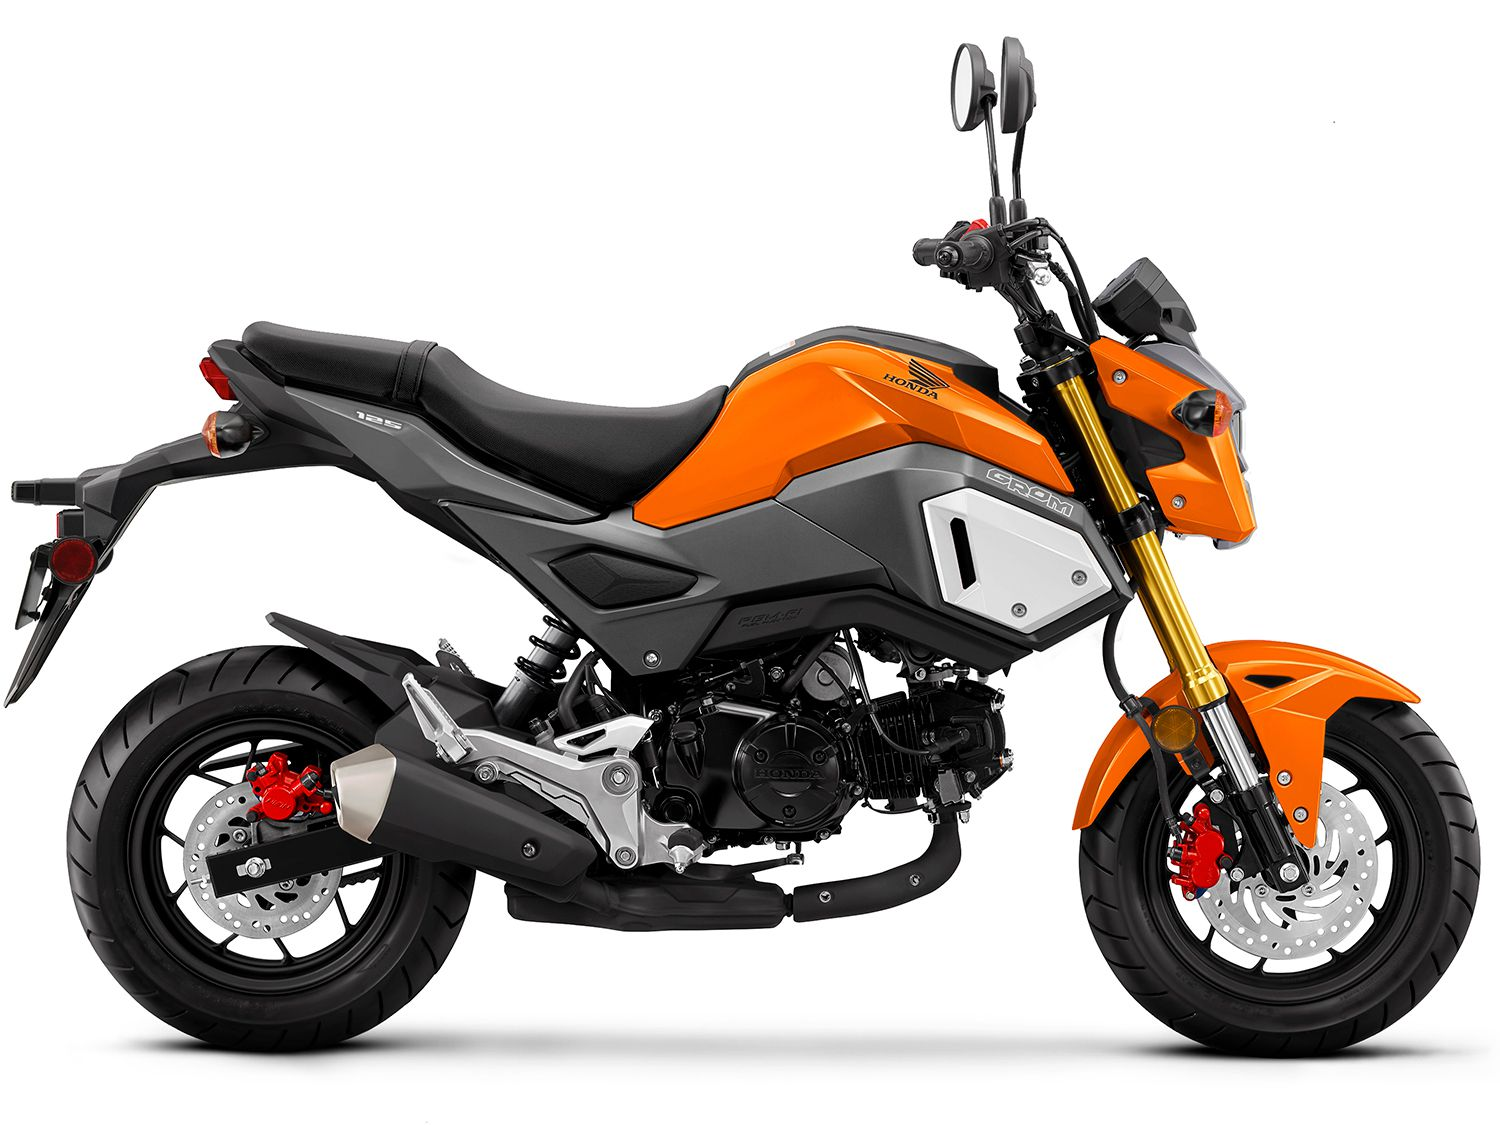 The Grom's low seat height comes courtesy of puny 12-inch tires, but don't underestimate this bike's fun factor.